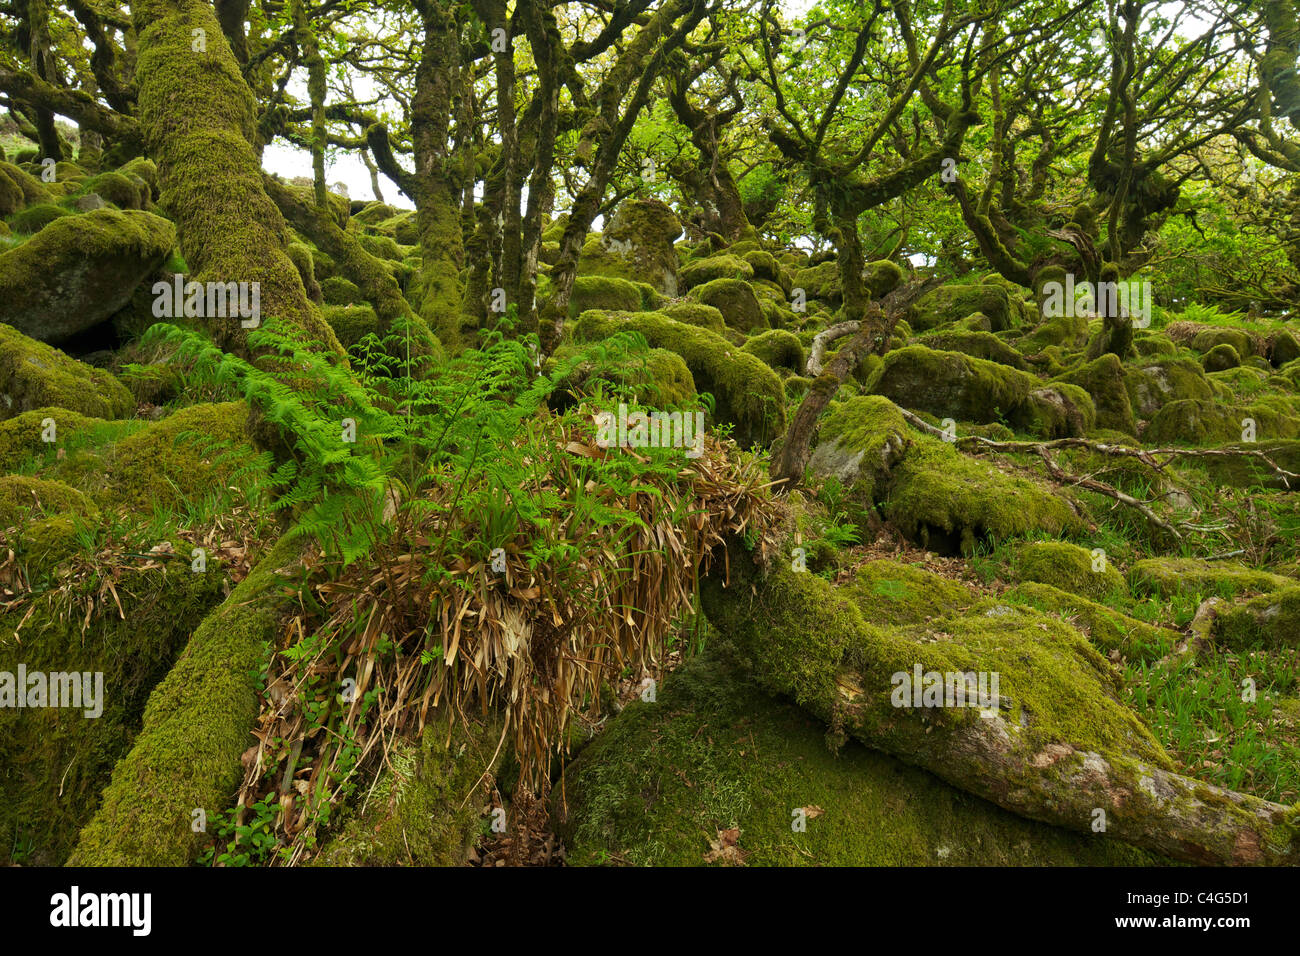 Sessile oaks and moss in Wistman's Wood Dartmoor Devon England UK GB British Isles - Stock Image